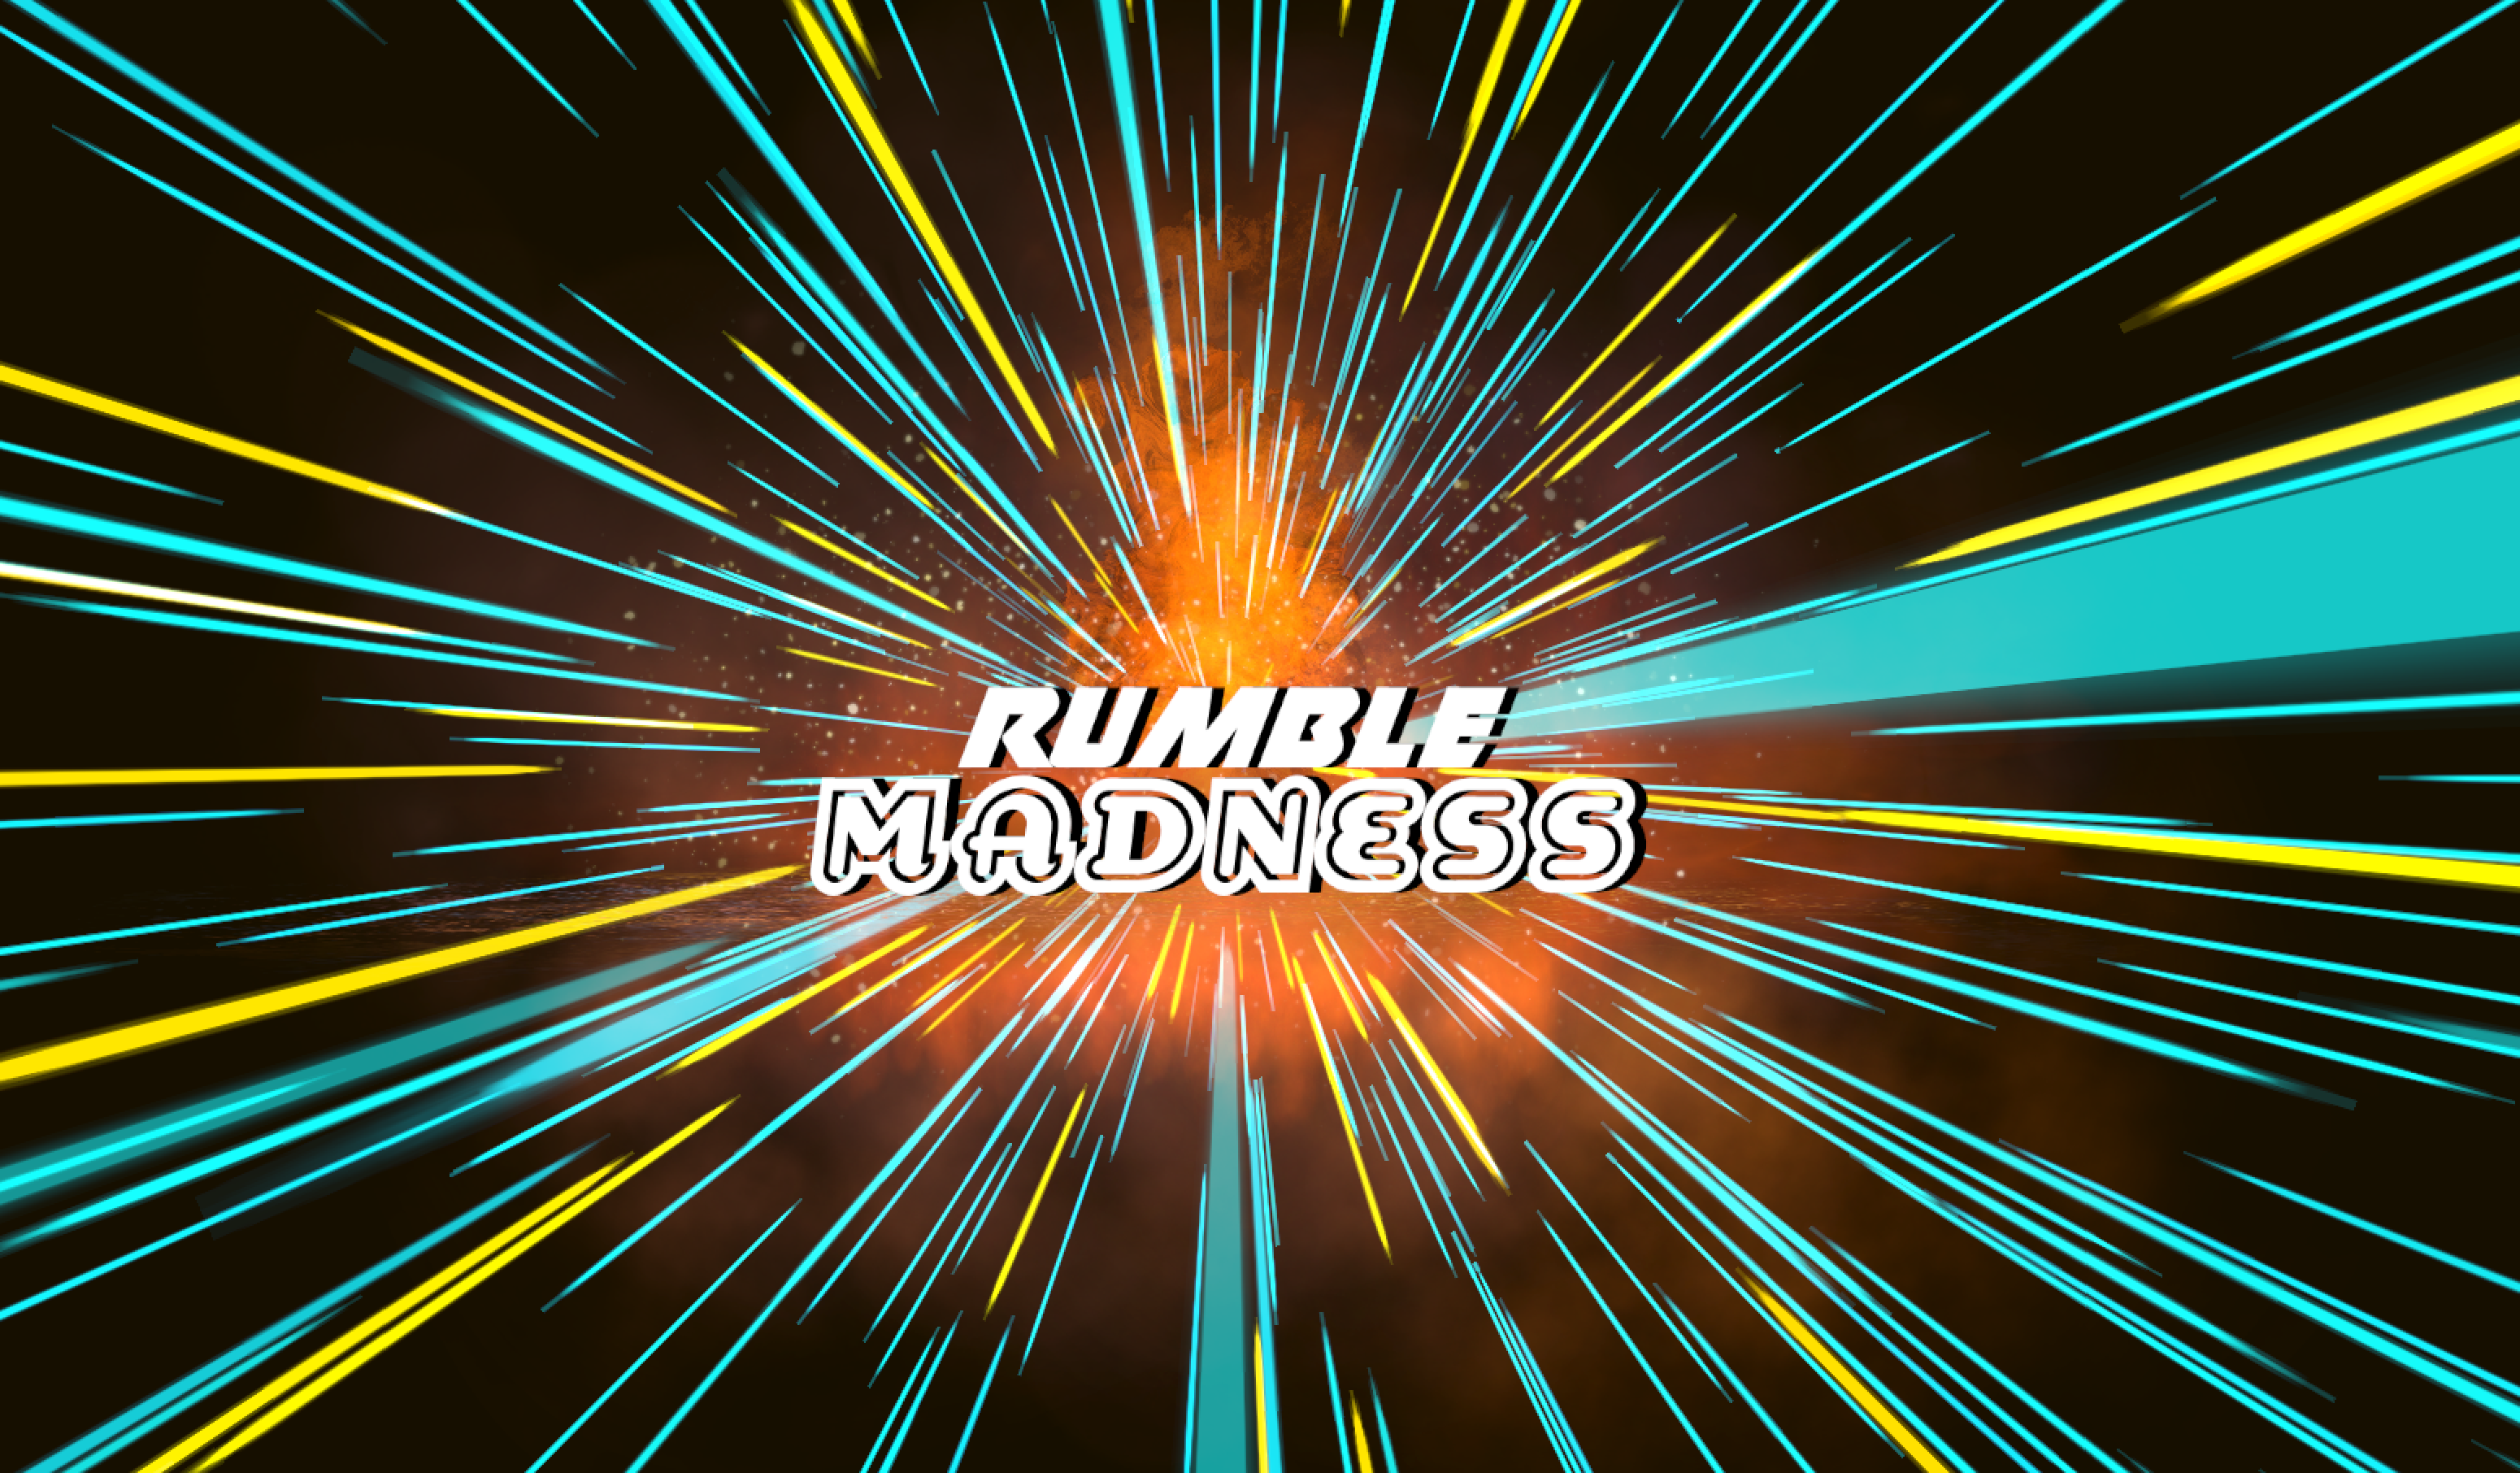 Rumble Madness